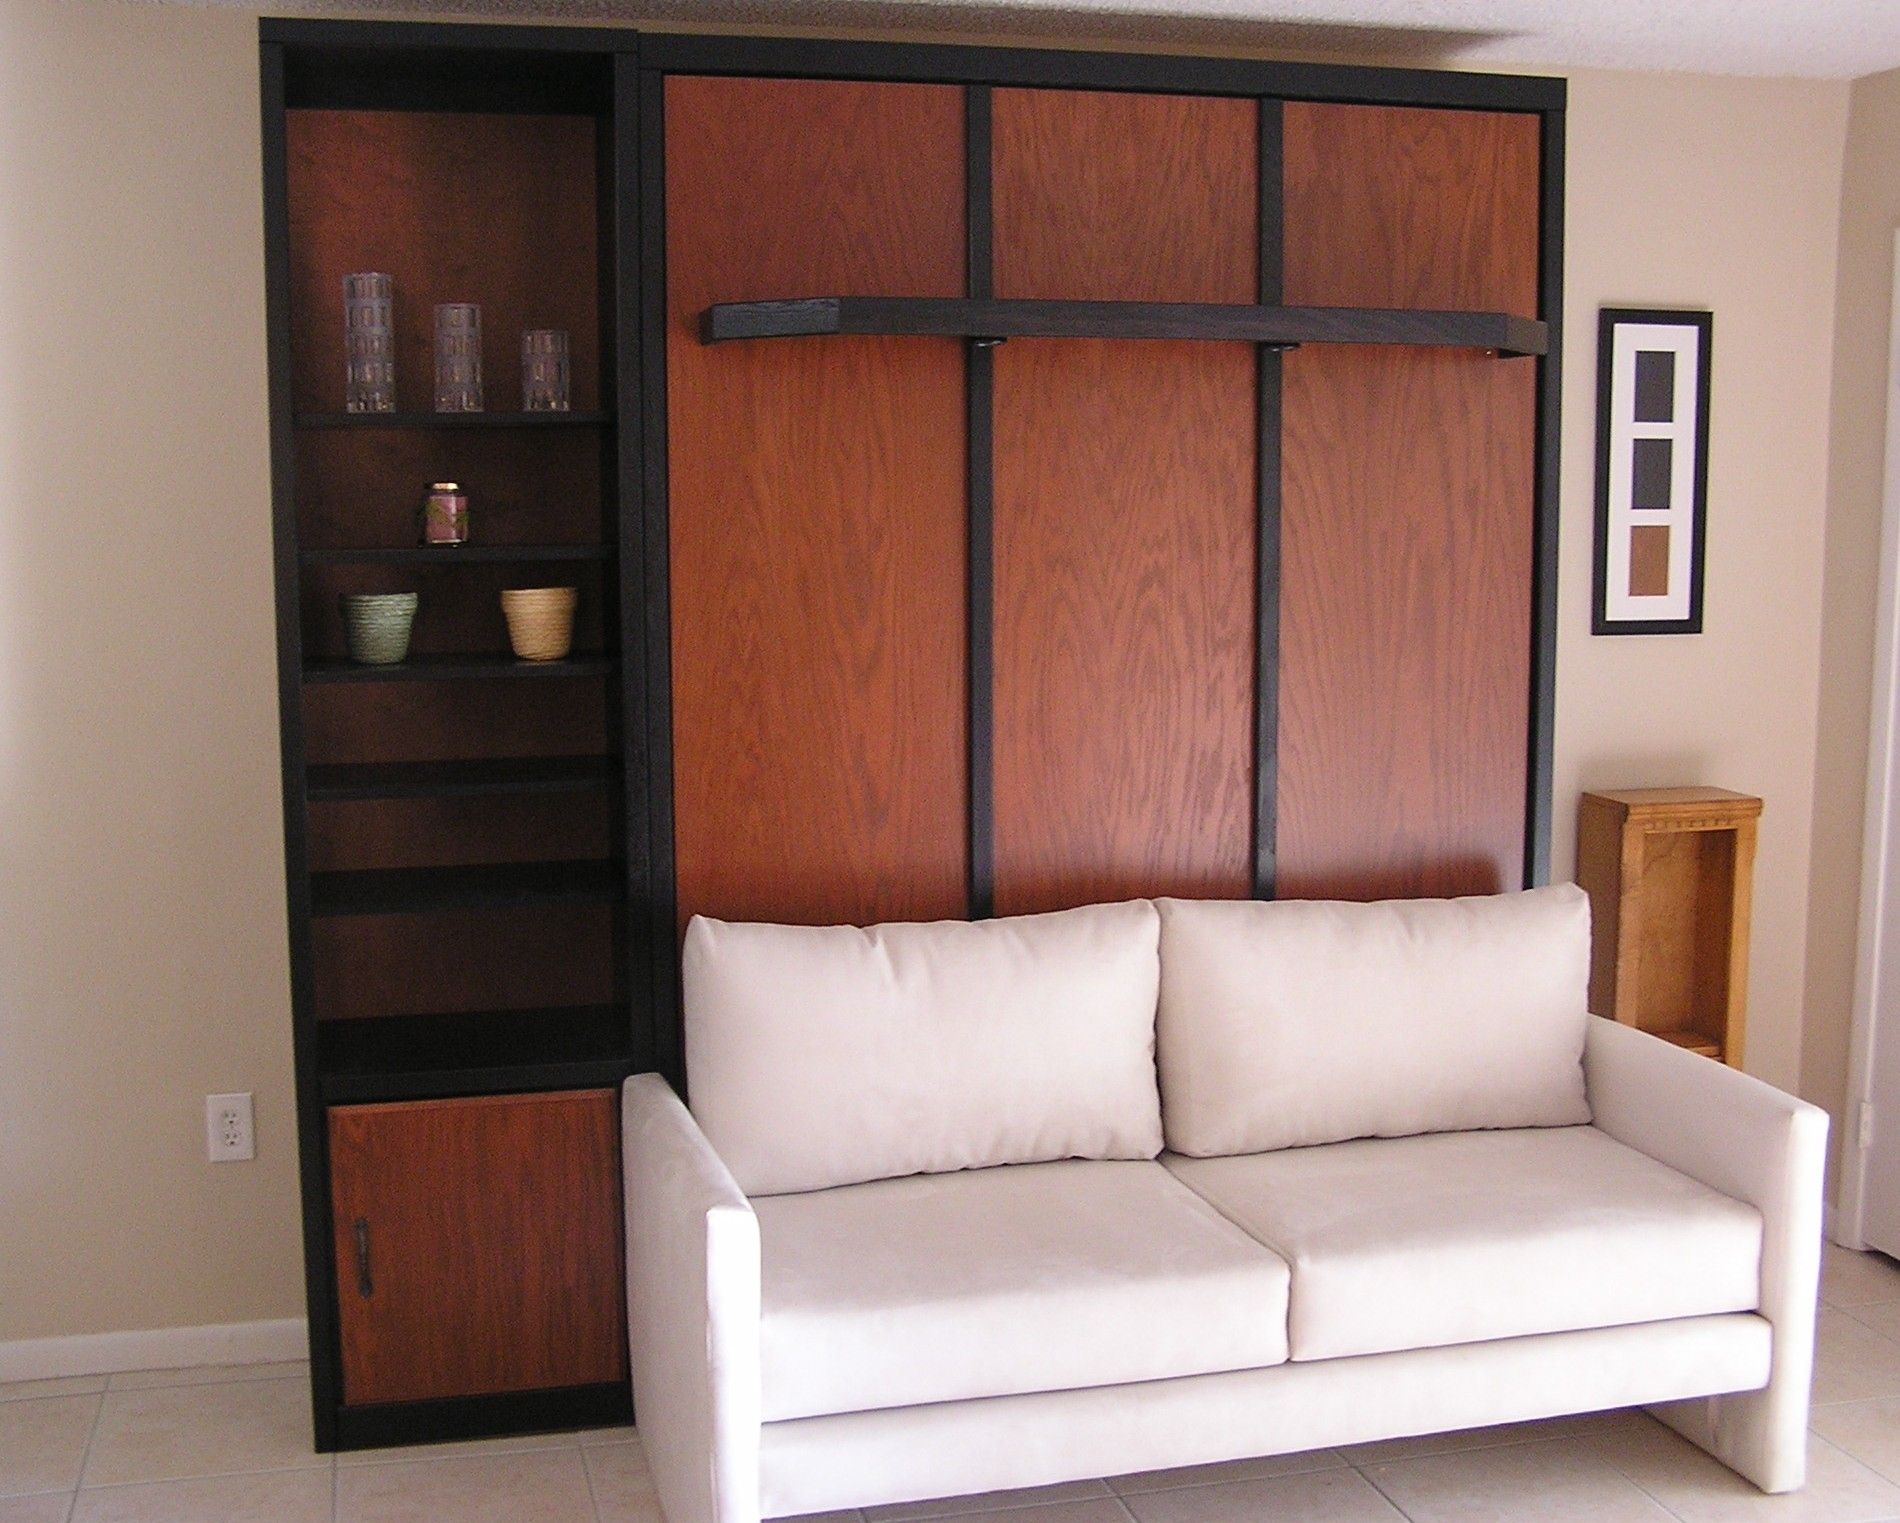 Murphy bed over sofa and they also show one that has a